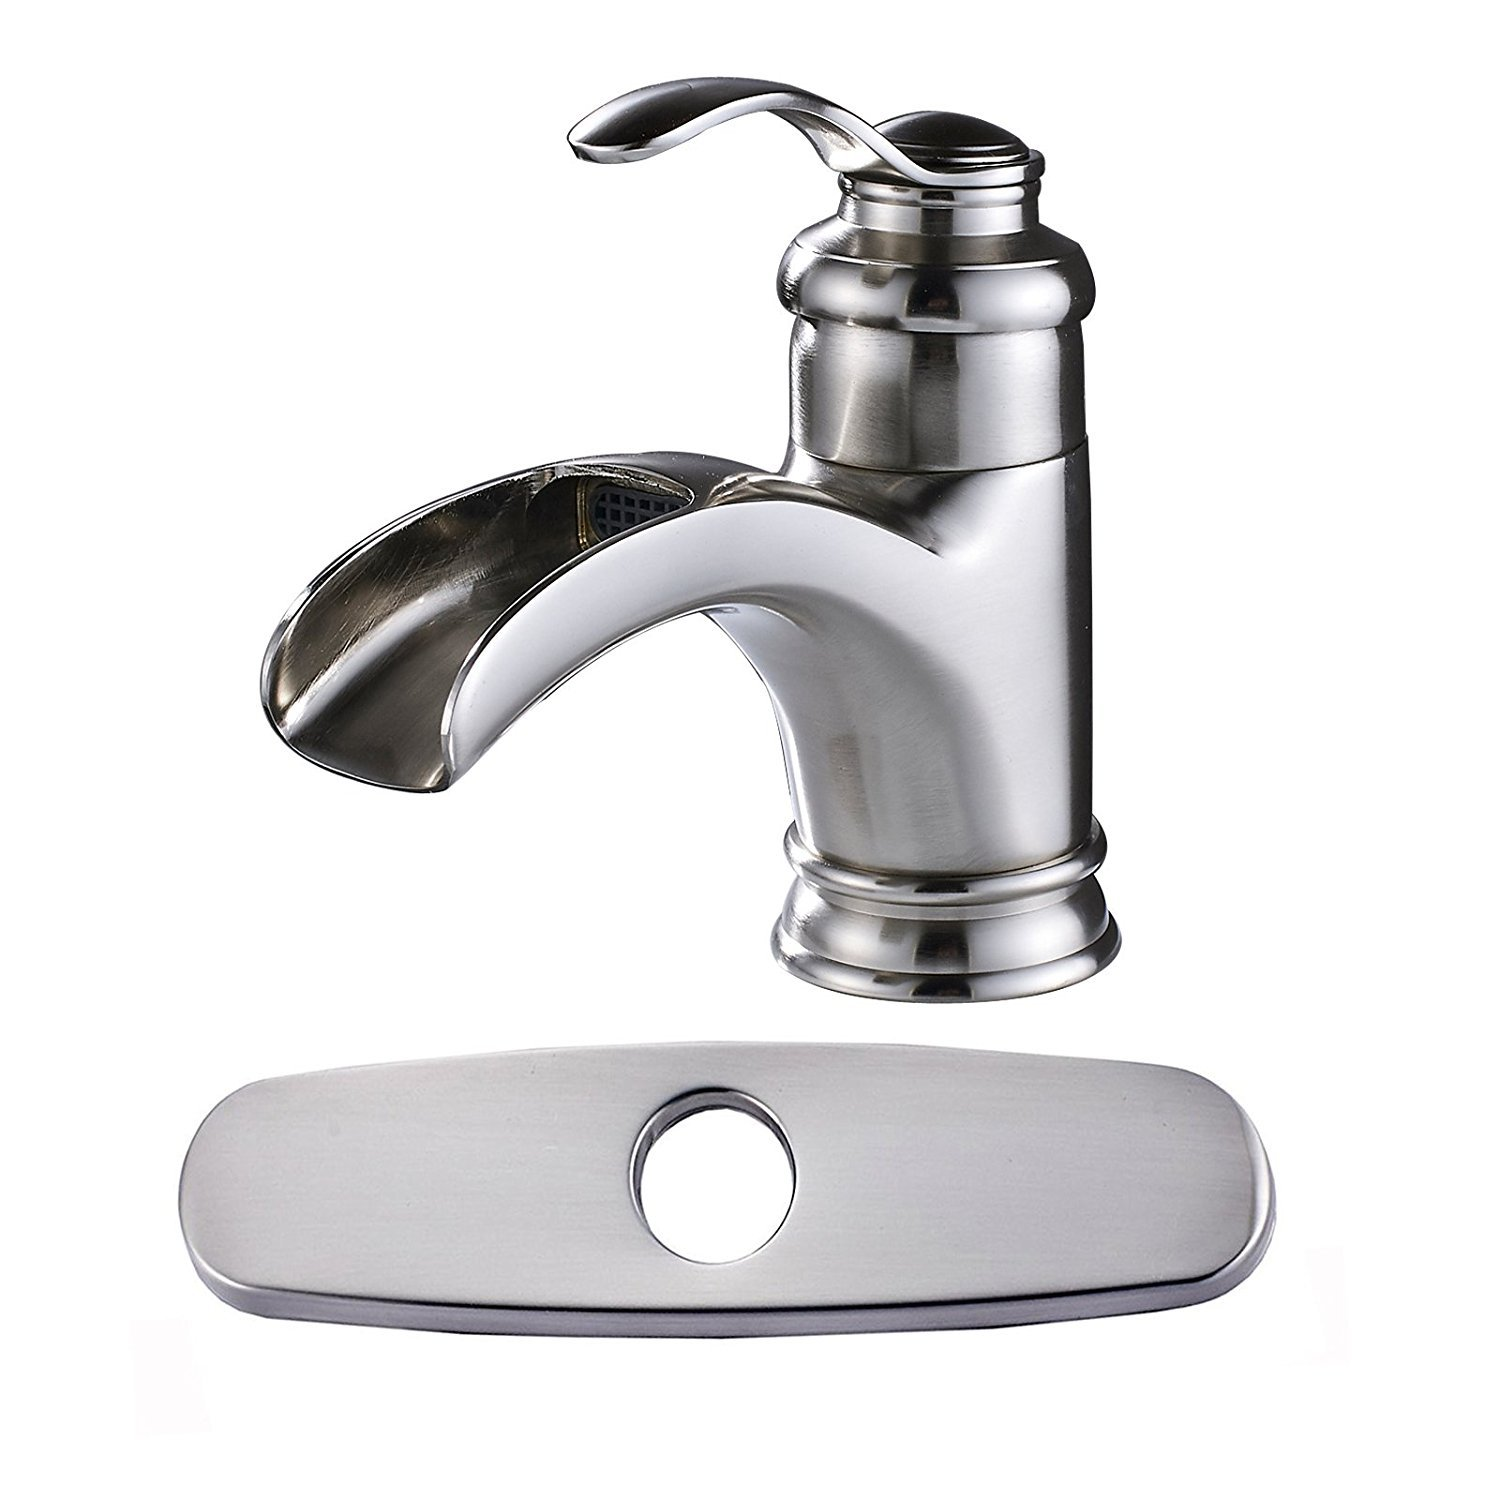 Votamuta Single Handle Waterfall Spout Bathroom Stainless Steel Sink Faucet Deck Mounted Mixer Tap with Cover Plate